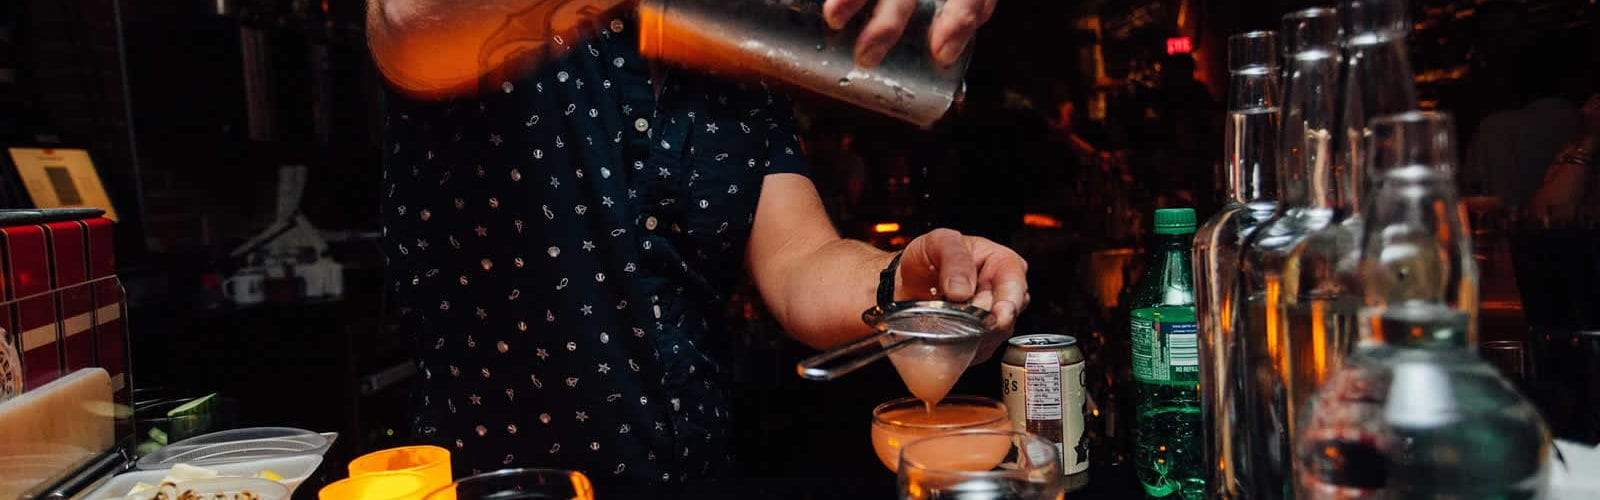 meilleurs-bars-secrets-caches-boston-cocktail-une